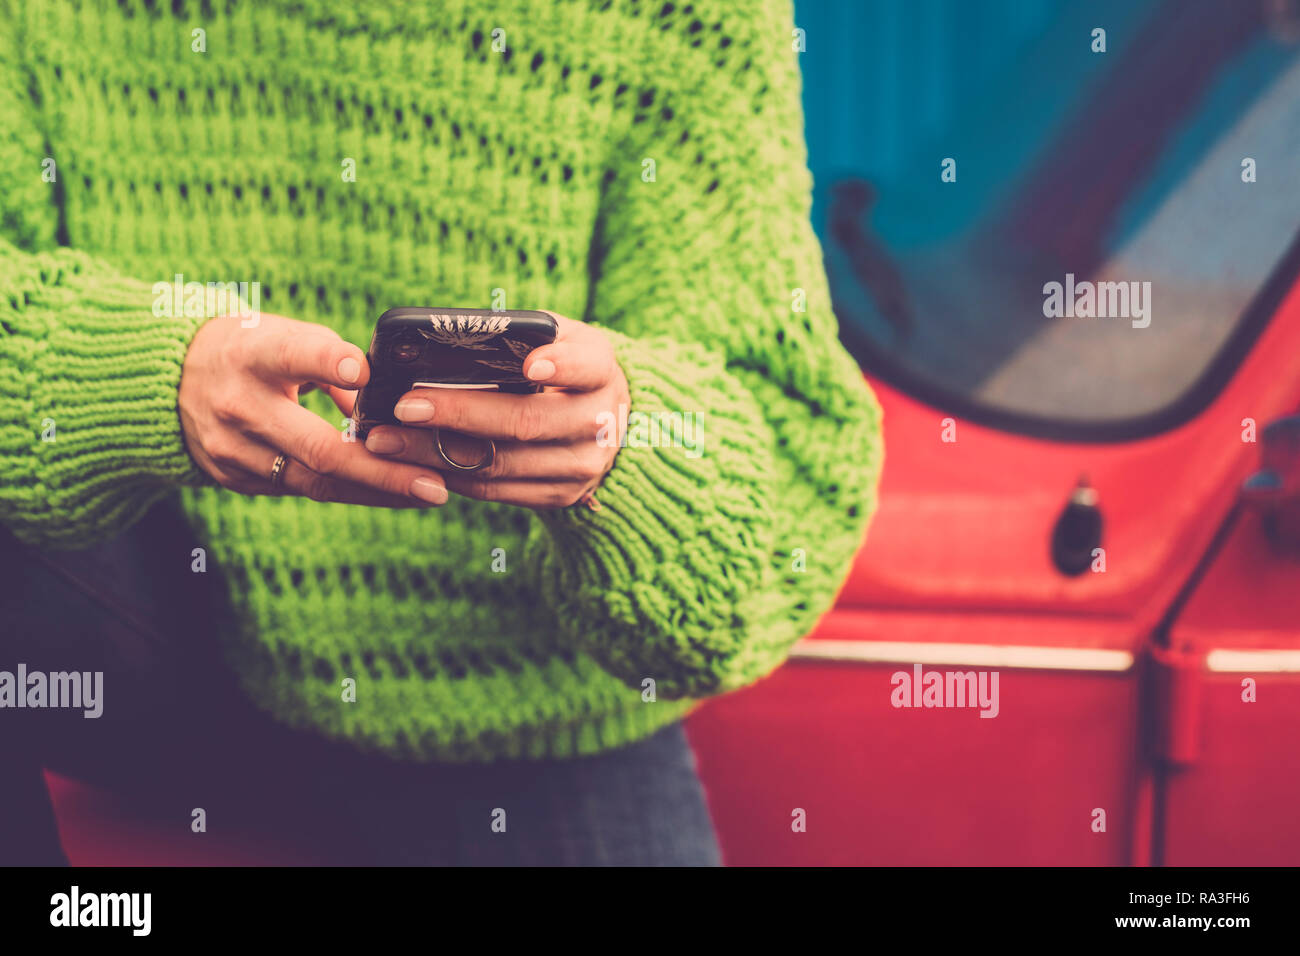 Close-up female hands using and messaging with modern technology smart phone - green jackets and red old vintage car in background - coloured lifestyl - Stock Image